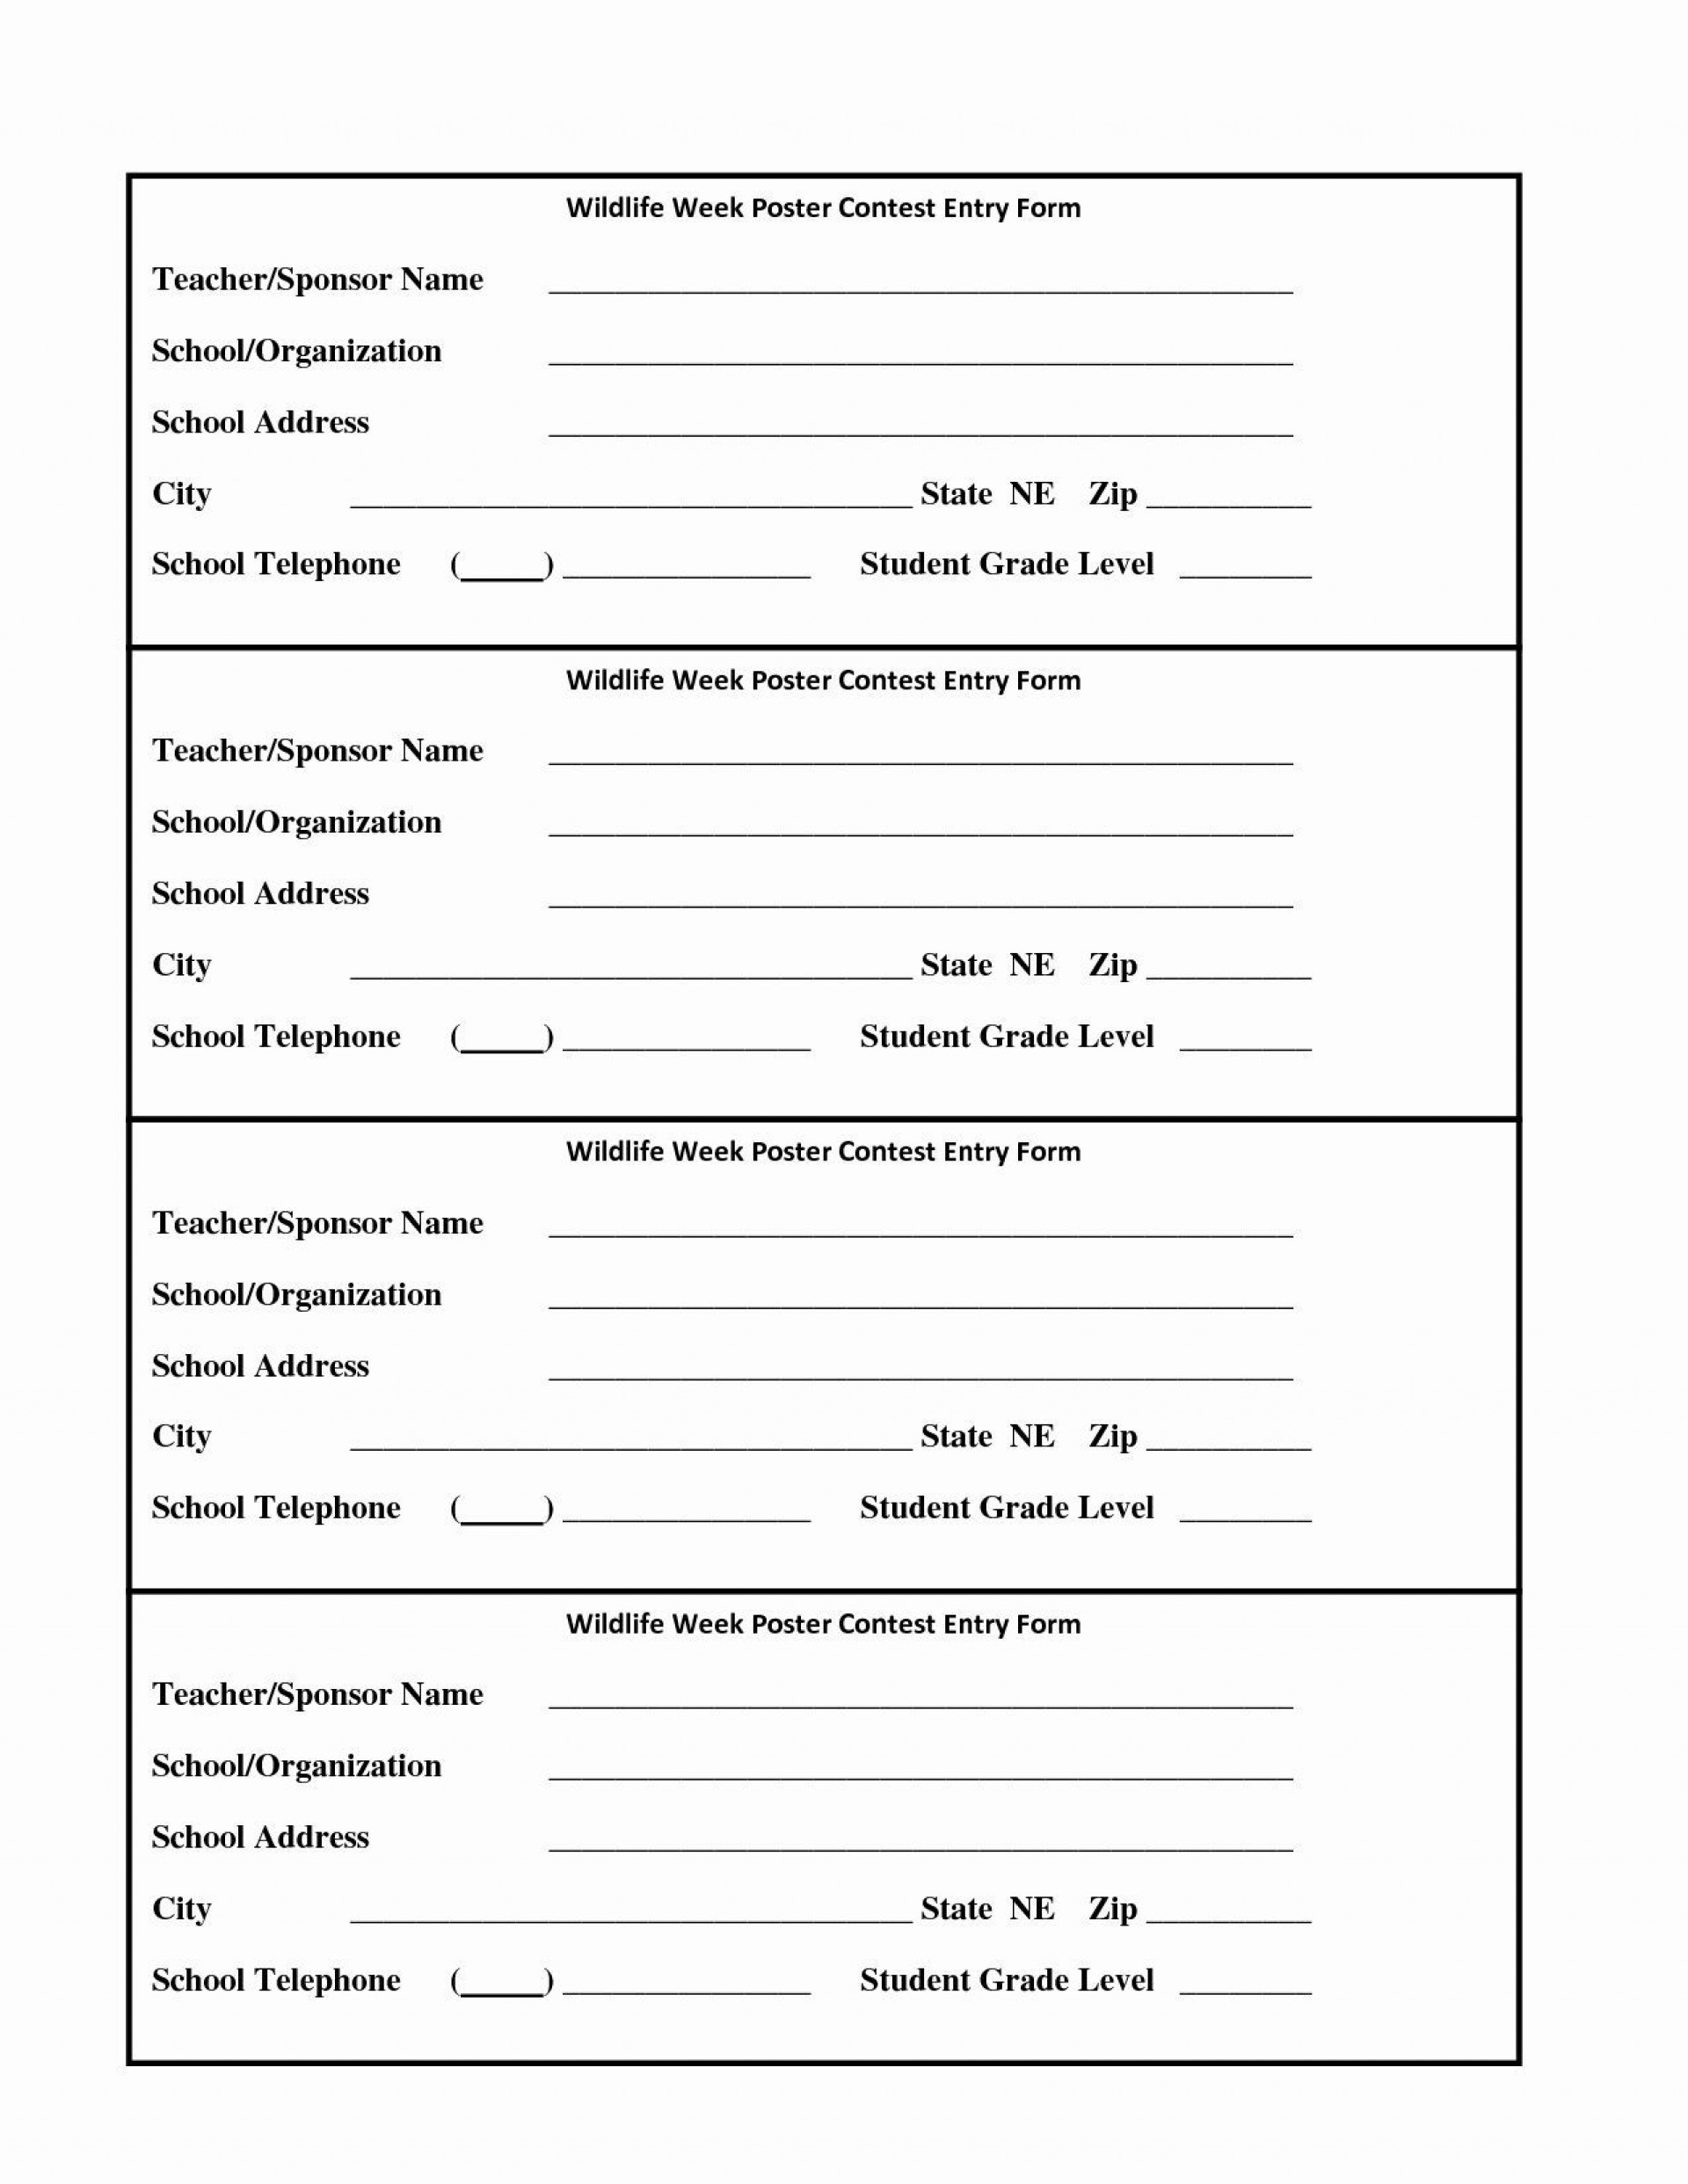 009 Incredible Entry Form Template Word Photo  Raffle Data Microsoft1920